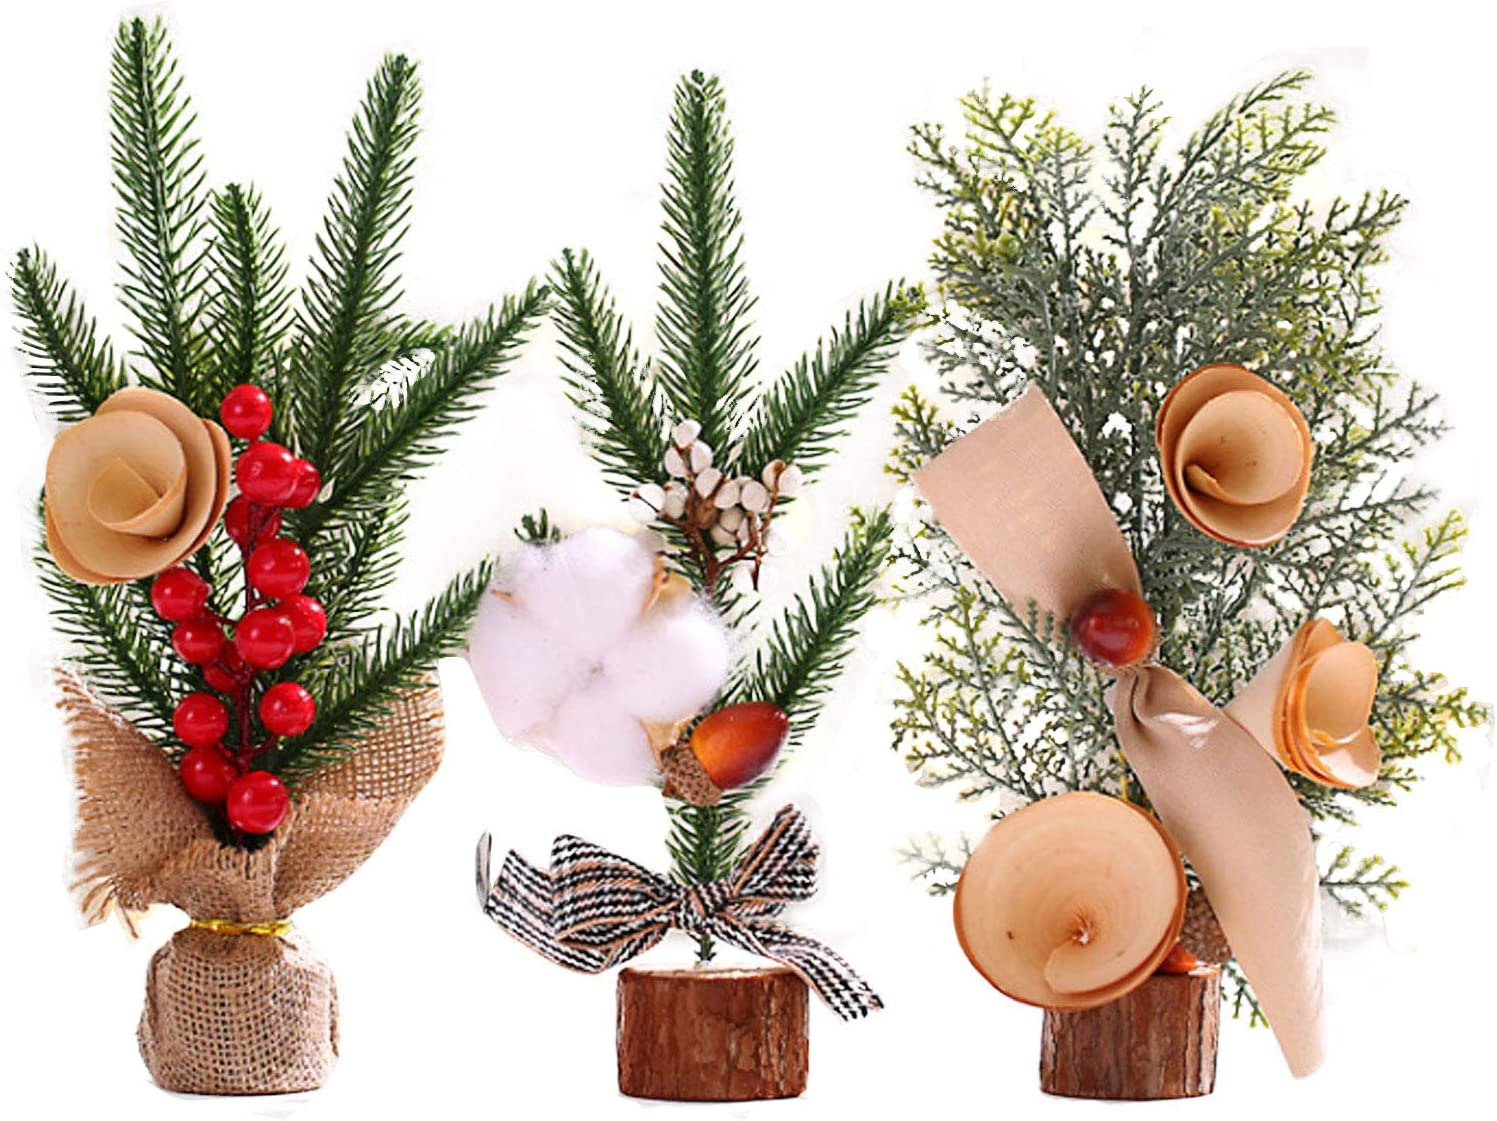 3 Pieces 10inch/25cm Tall Mini Artificial Christmas Tree with Ornaments Christmas Pine Tree for Your Home or Office for Christmas decor, table, desk, window decoration. (3pack-10inch/25cm Tall)